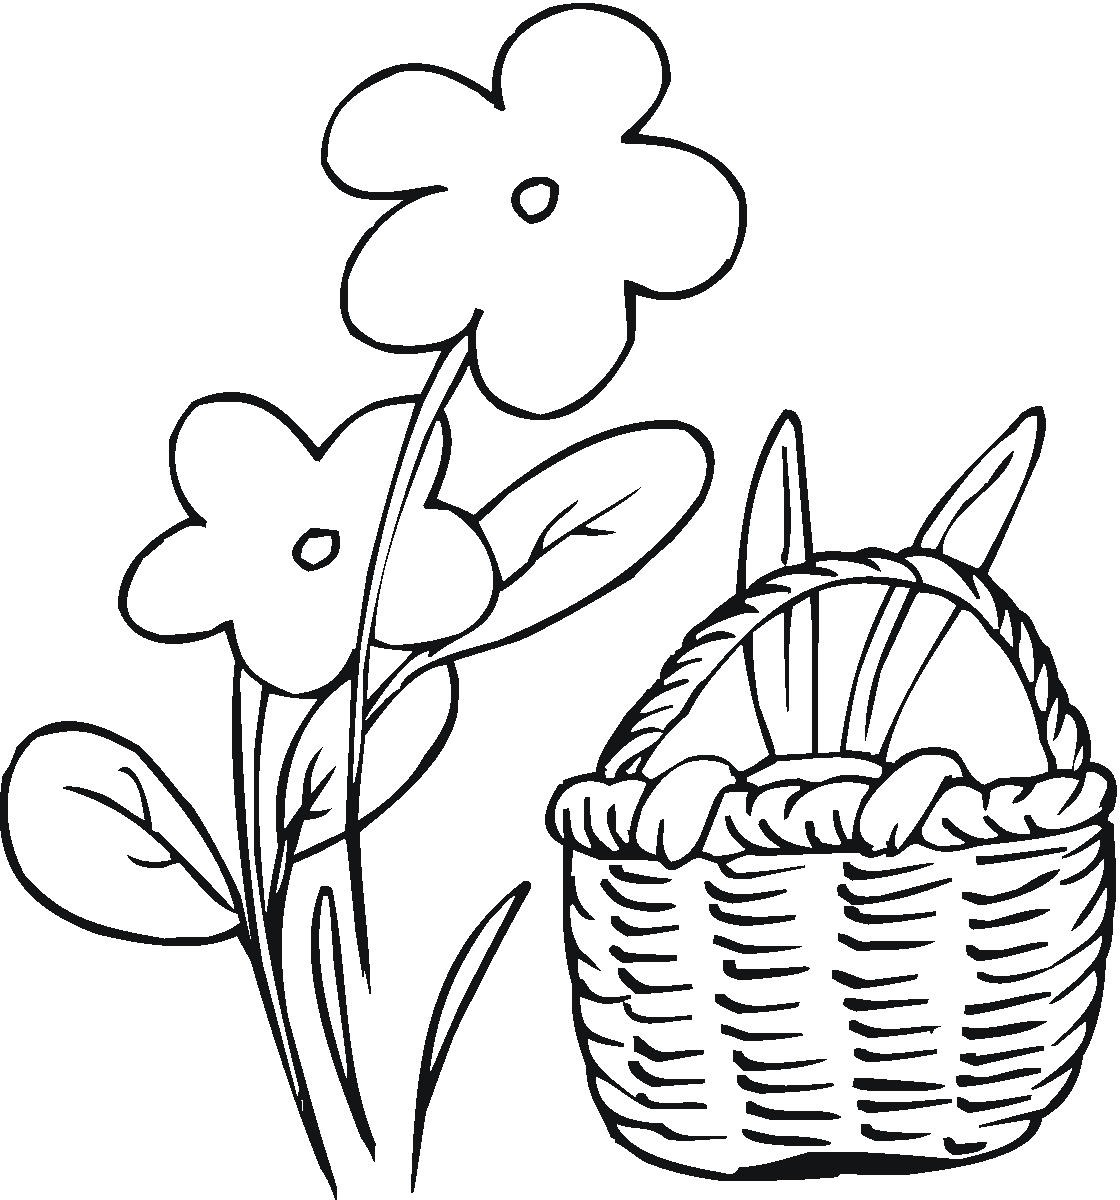 easter bunny coloring page. Easter bunny printable